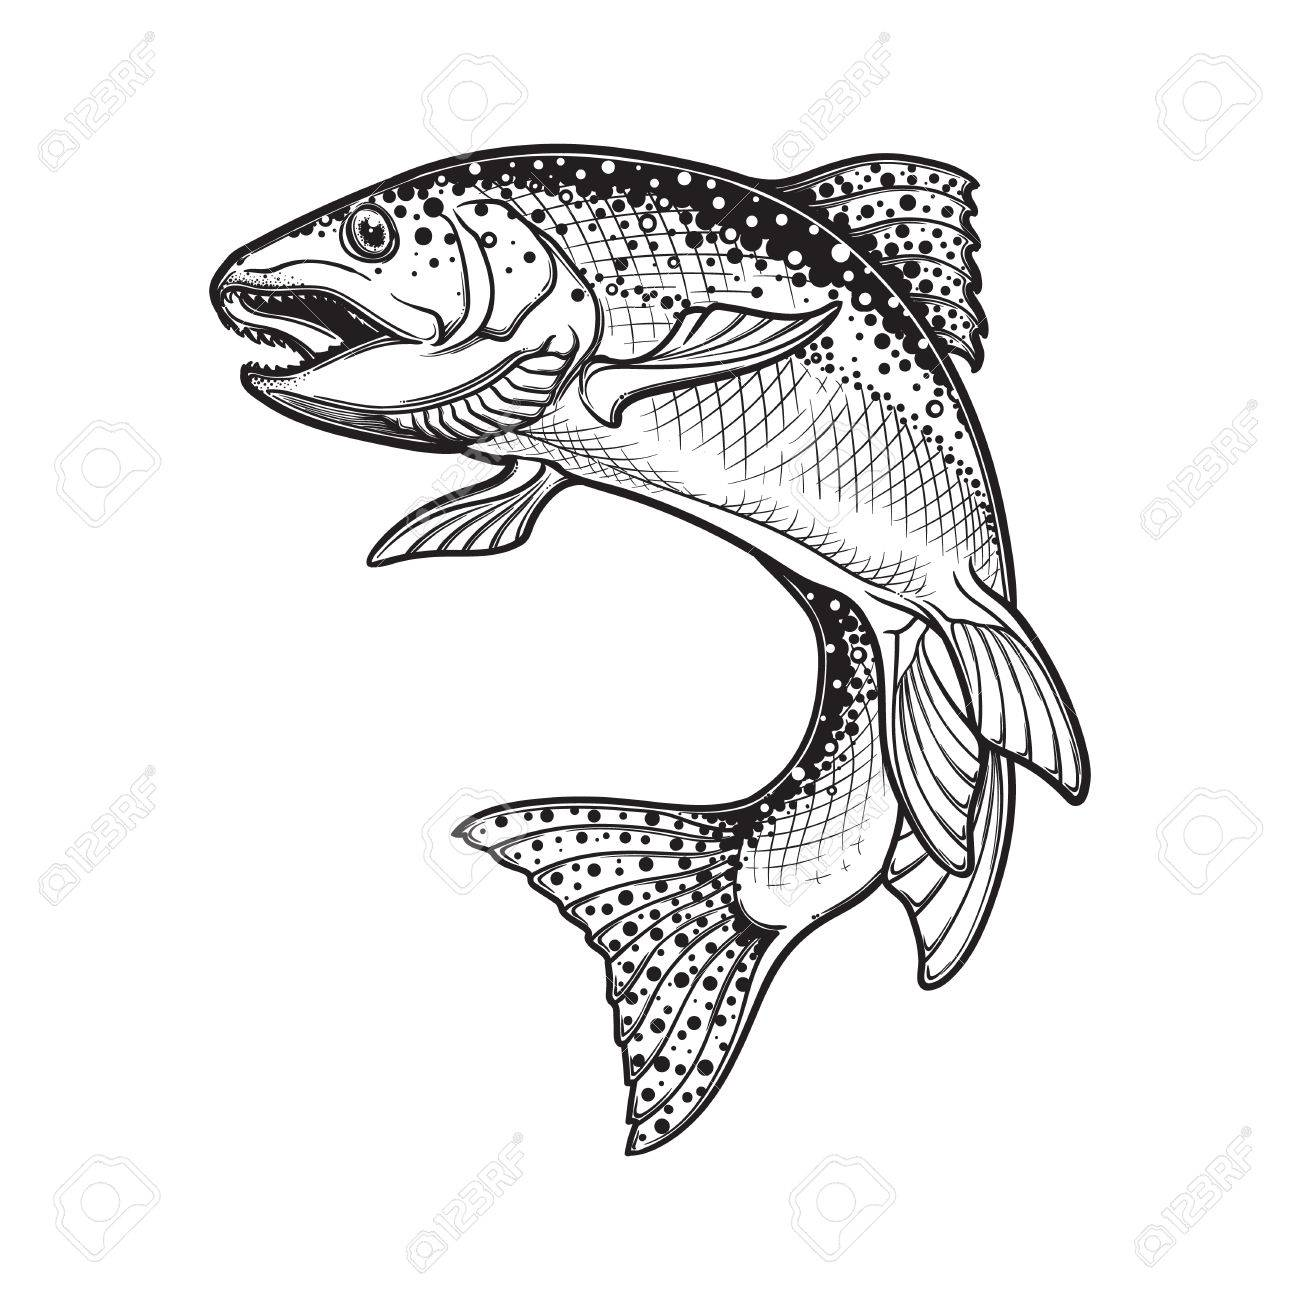 1300x1300 Realistic Intricate Drawing Of The Rainbow Trout Jumping Out